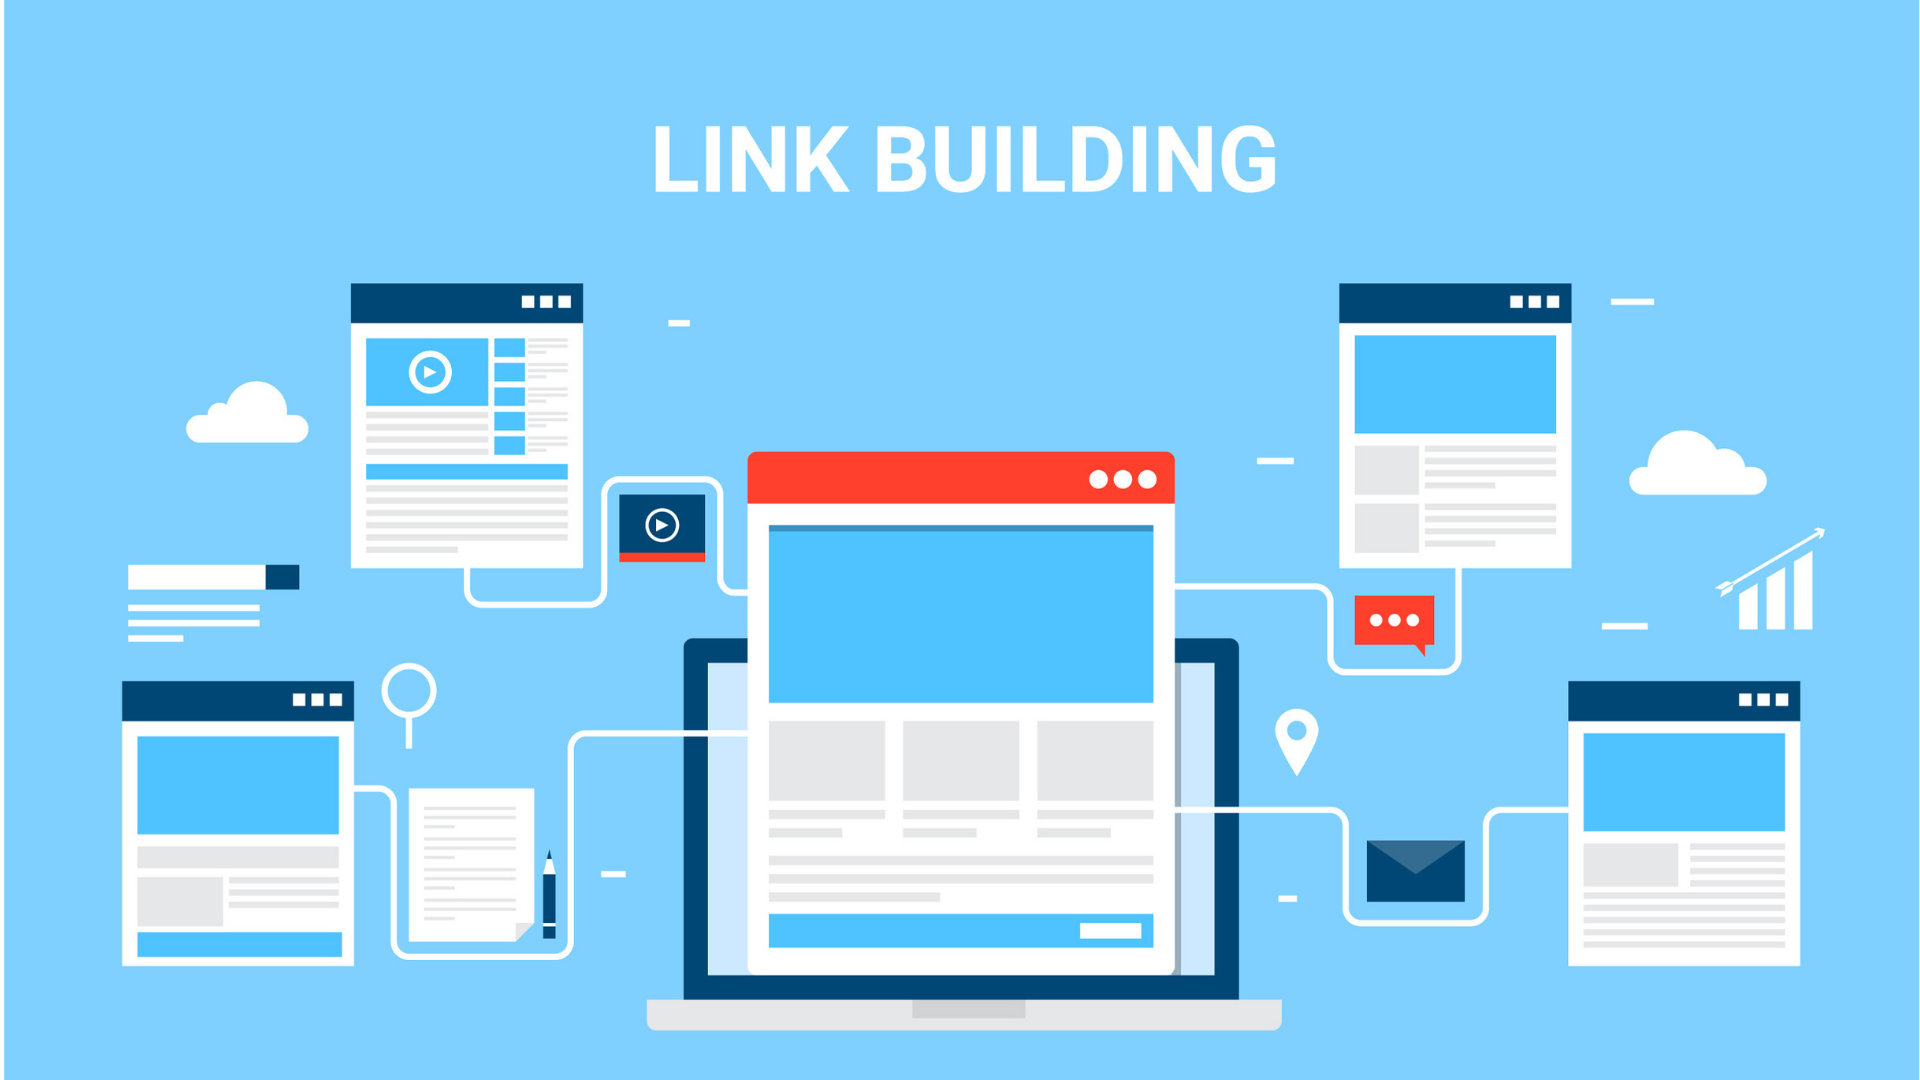 Building Links with Great Content